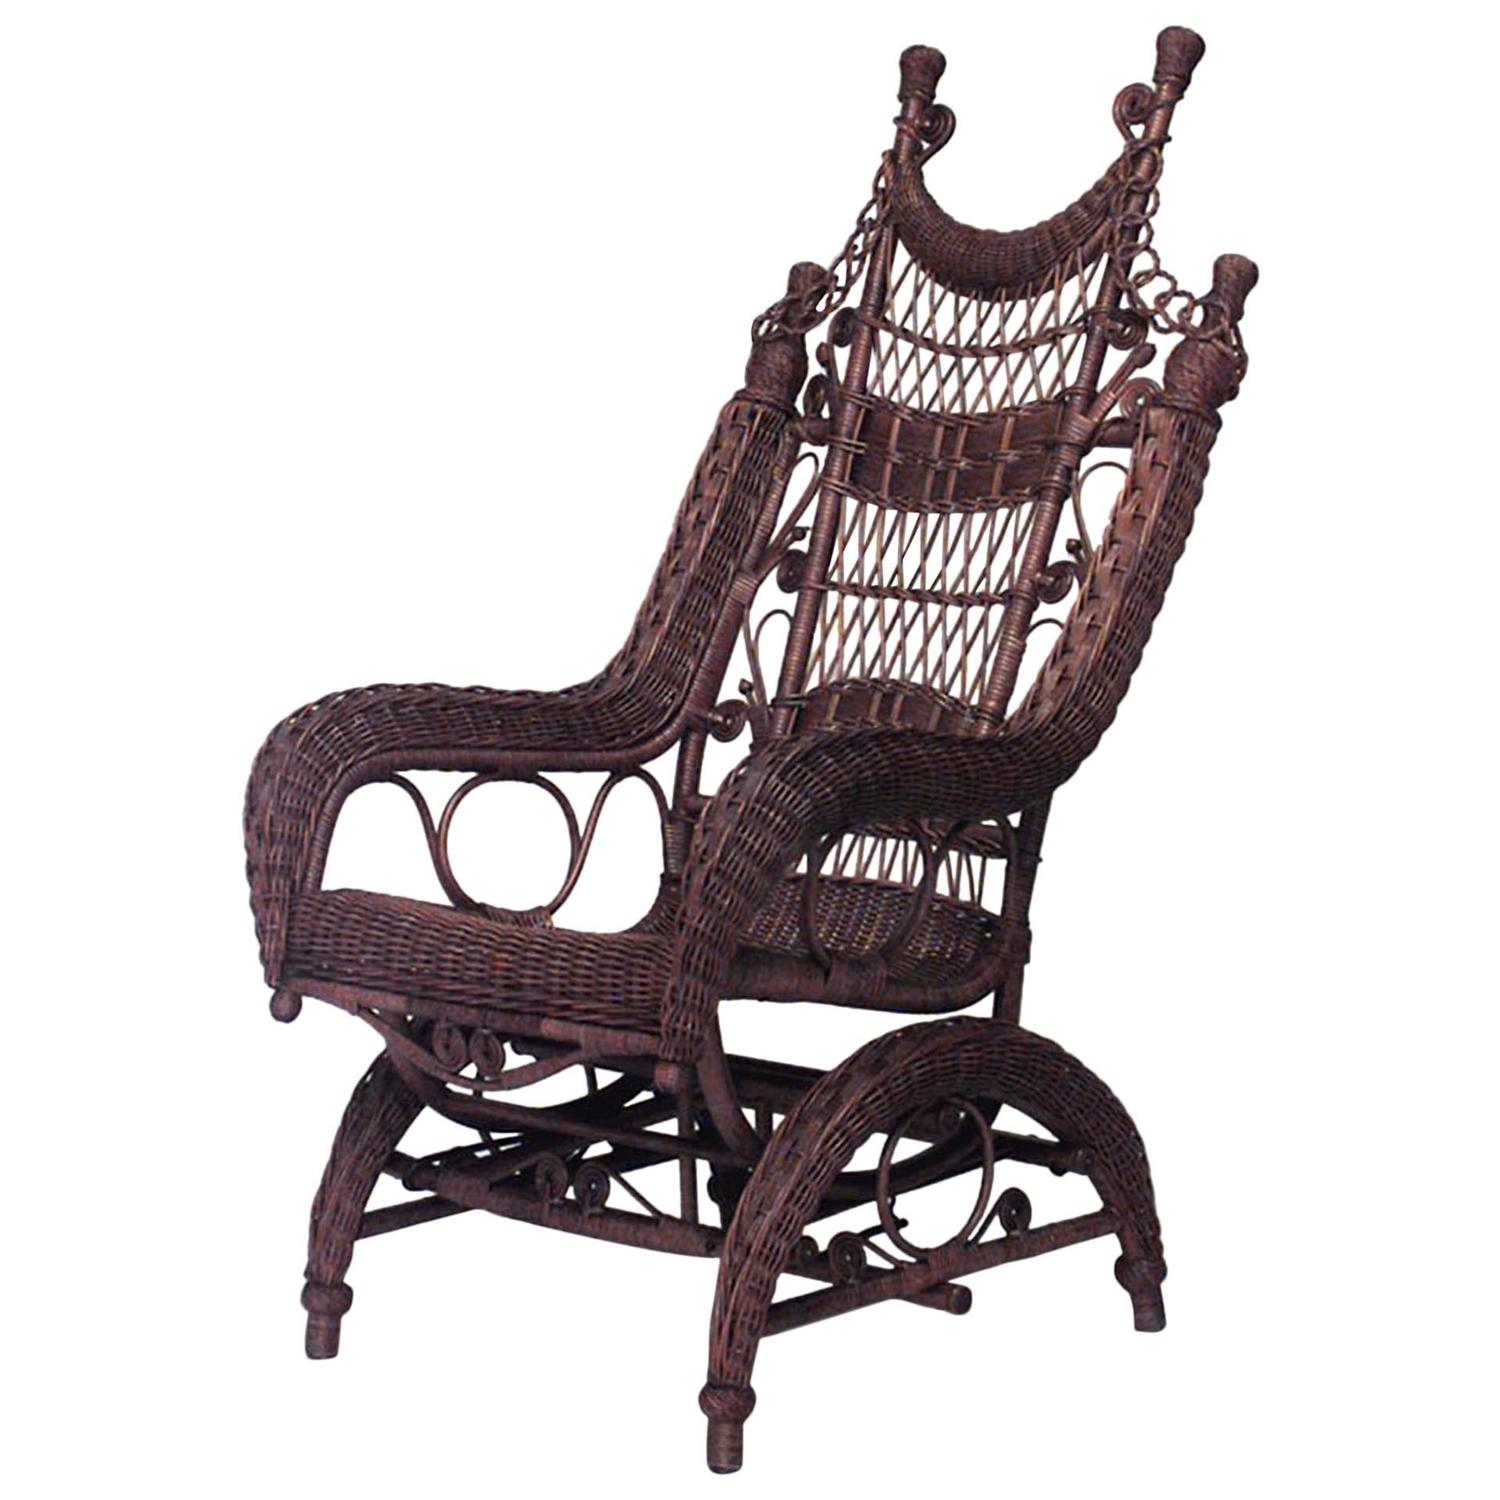 wicker rocking chairs stool chair pictures 19th century american ornate high back